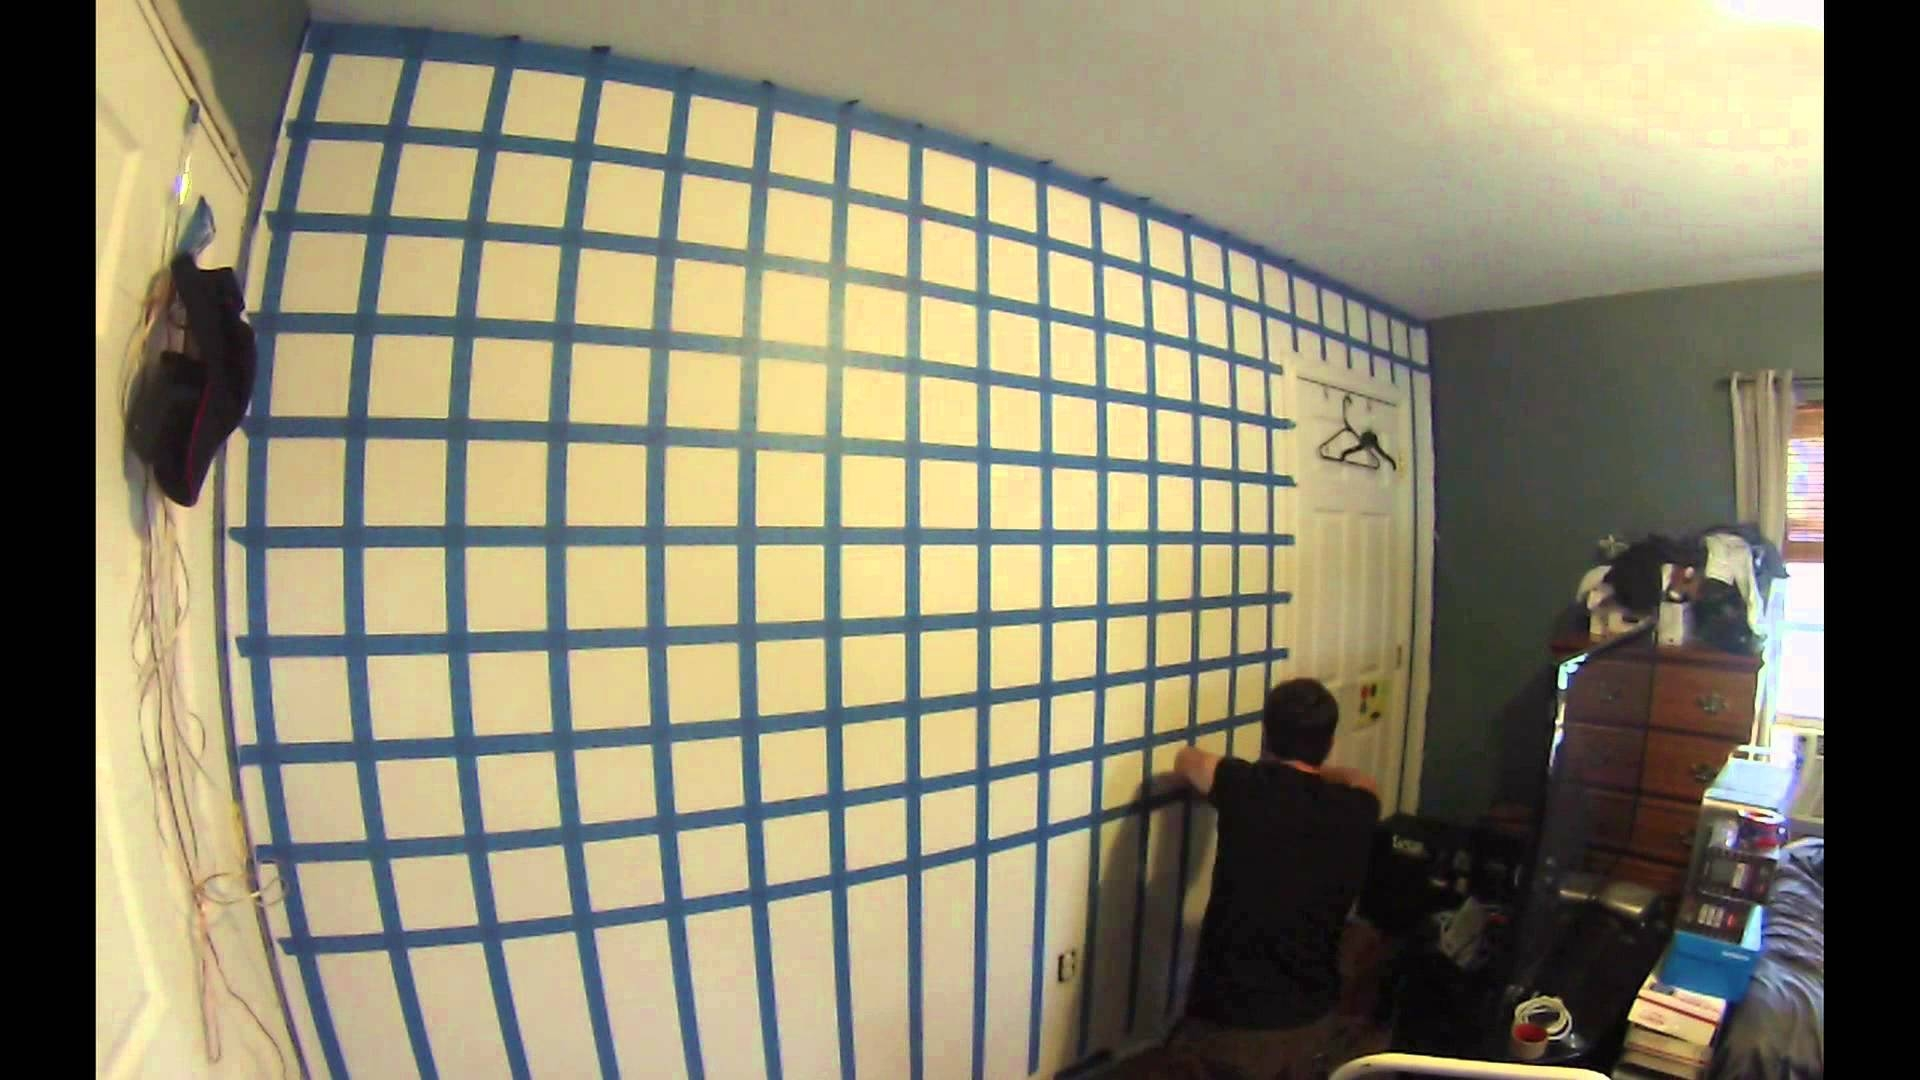 Hd 3D Cube Wall Painting Time Lapse Youtube With Regard To Most Up